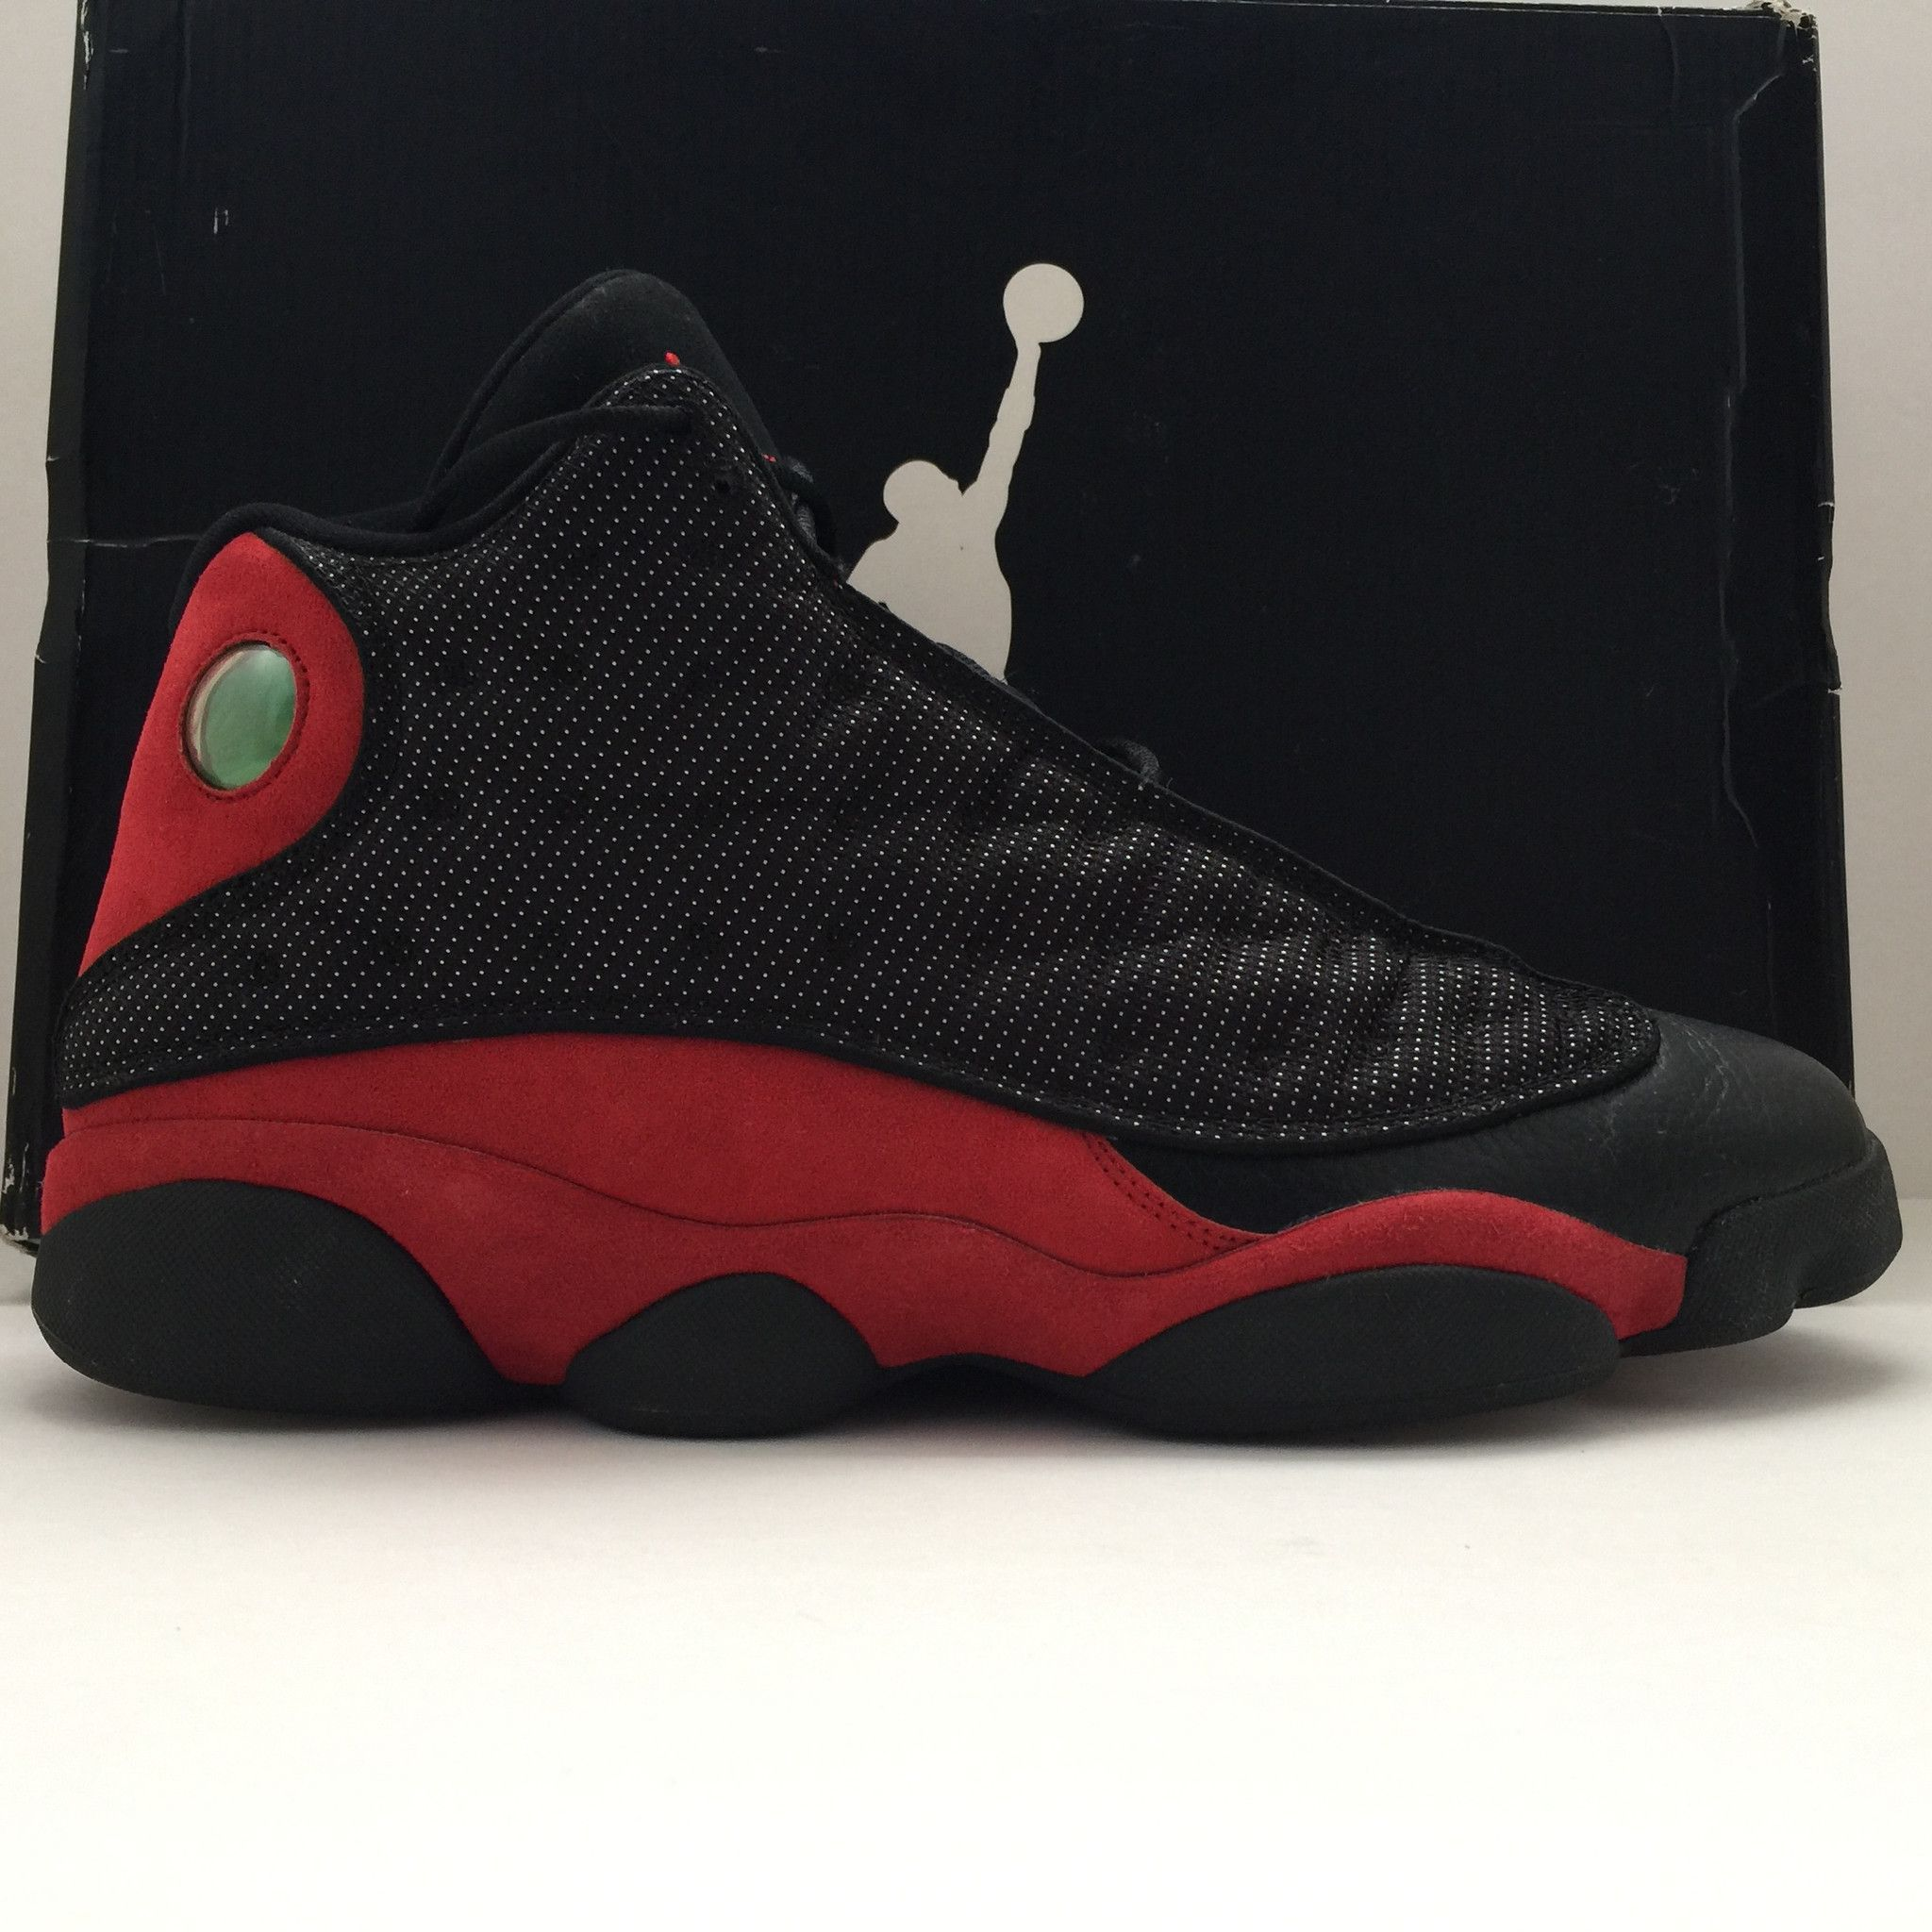 Name  Jordan 13 Bred Size  13 Condition  Used  1262d4a4f